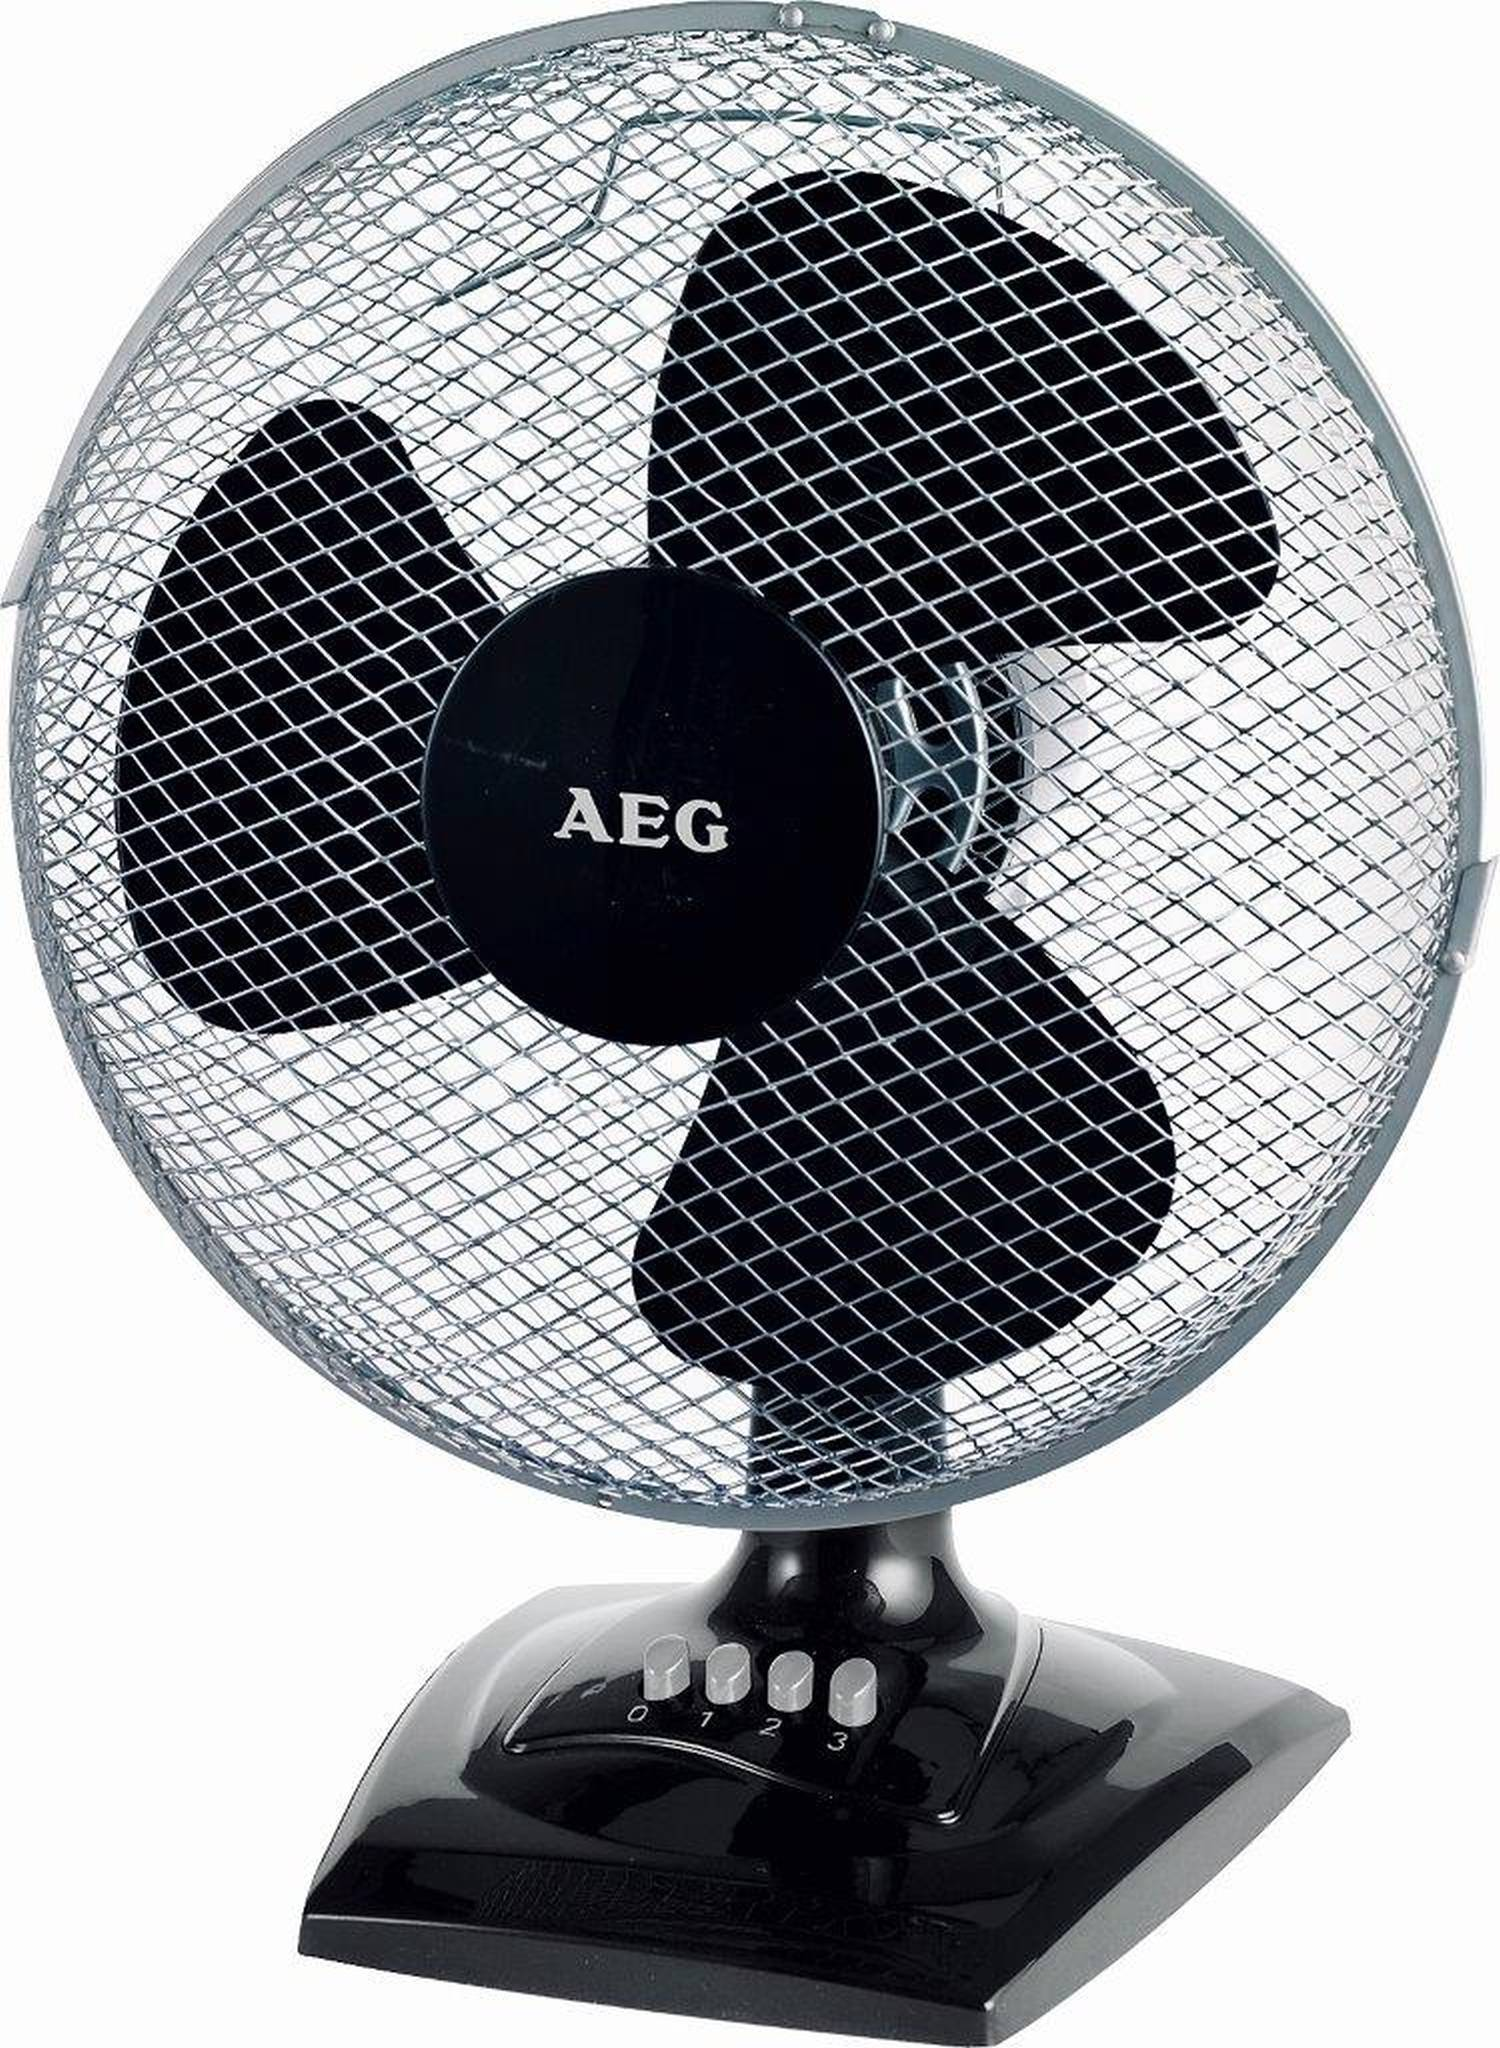 2 in 1 aeg stand ventilator tisch ventilator f r wandmontage 30 cm neu ebay. Black Bedroom Furniture Sets. Home Design Ideas